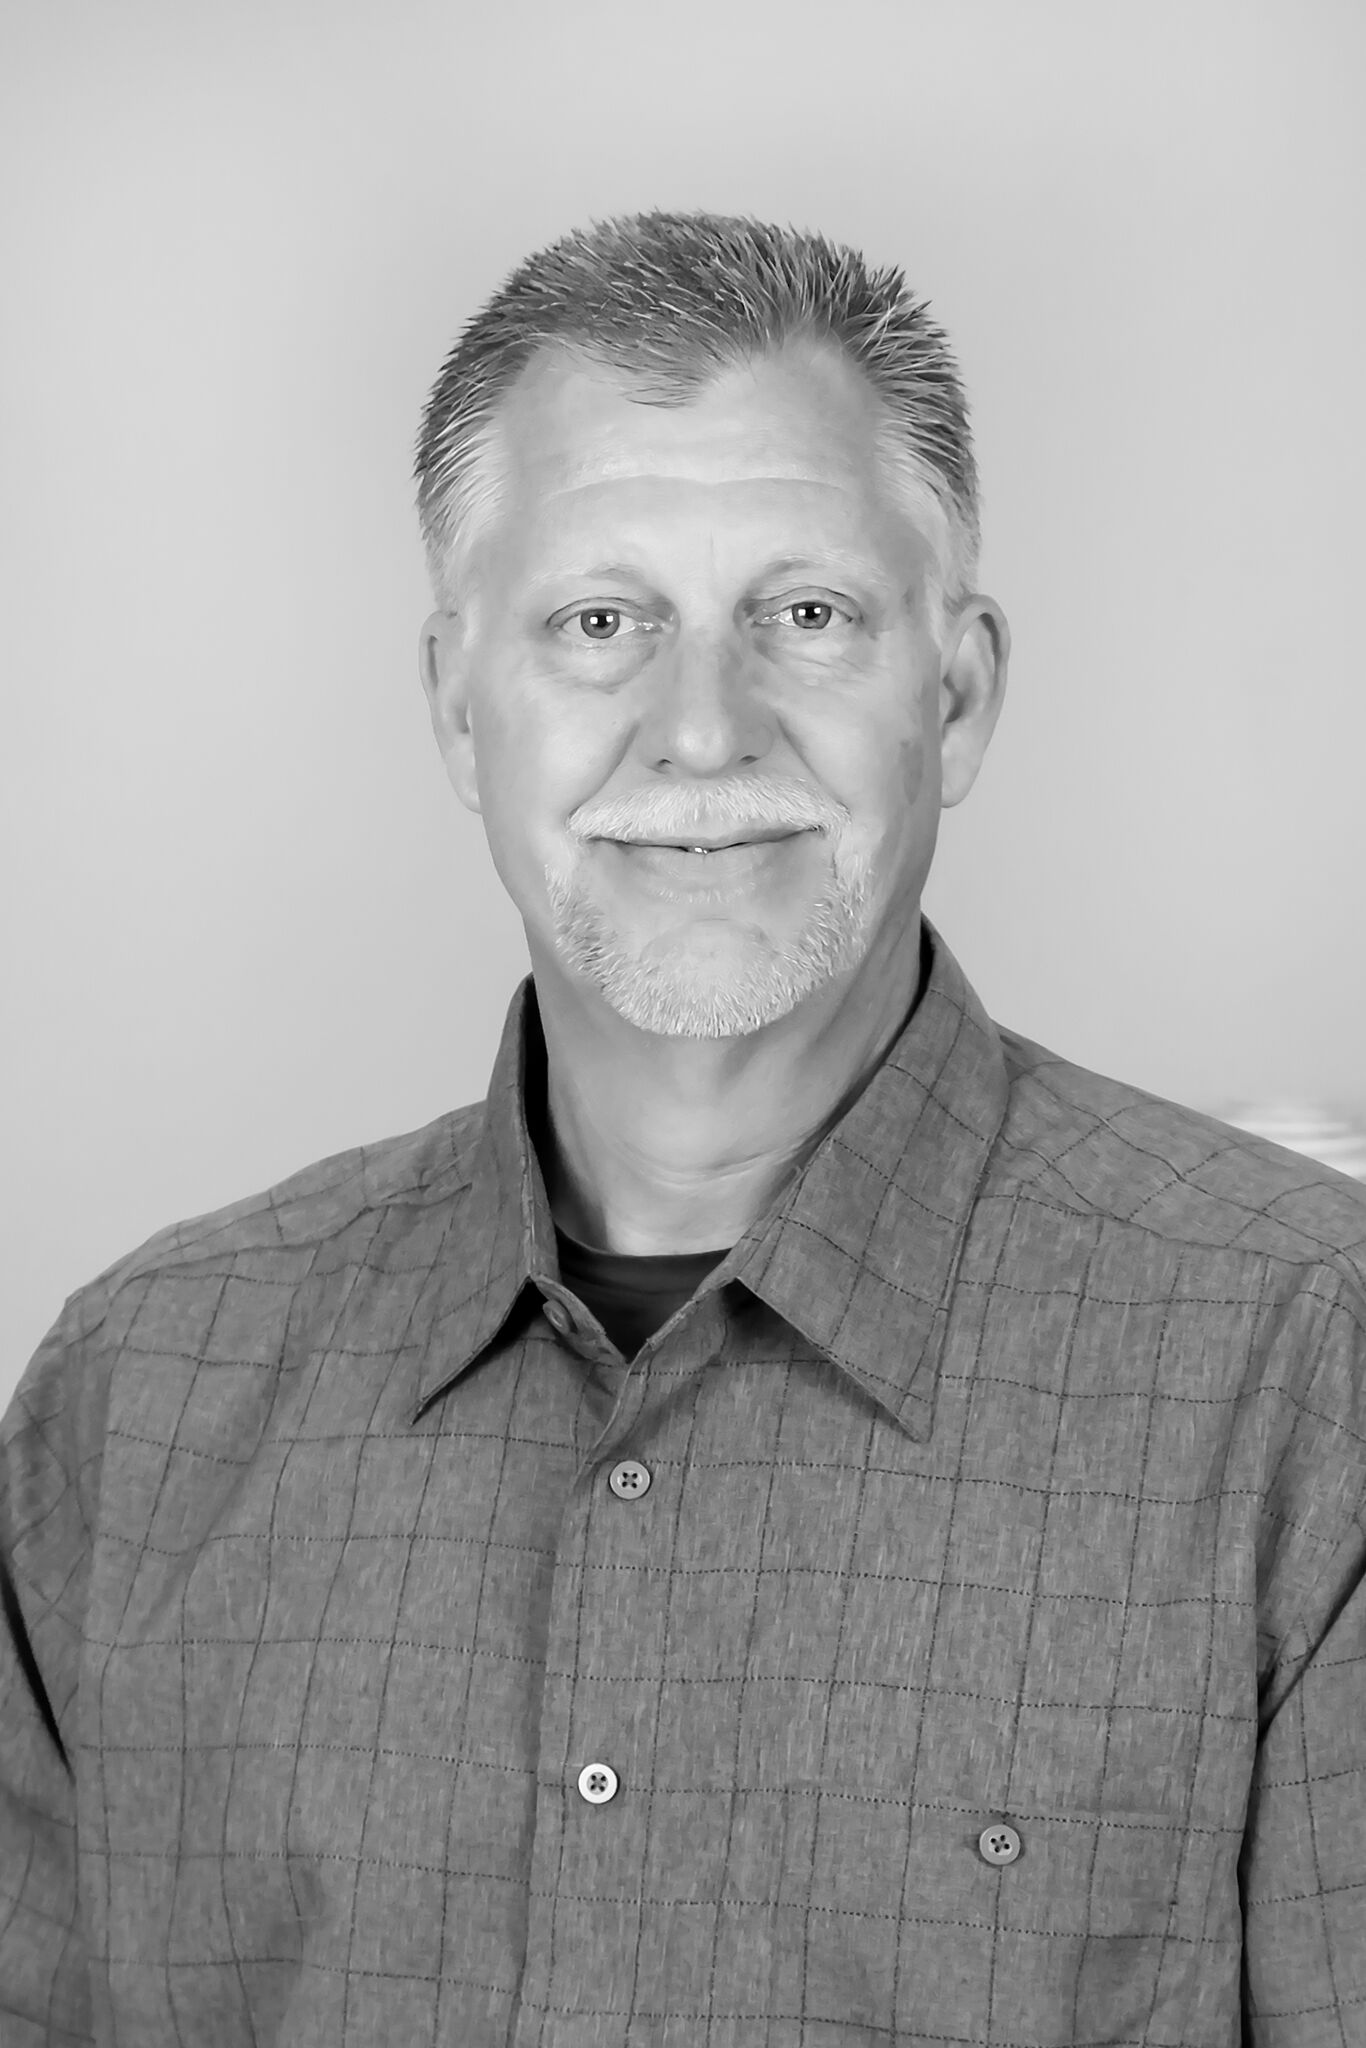 GARY PETERSON    PROJECT SUPERINTENDENT   With a background in framing and finish carpentry, Gary's 22+ years in the construction industry his attention to detail and management style are wonderful assets to Team C. Gary ran such projects as Township 28 as well as the Team C office remodel. He is currently running our Cambium and Commons Heights Projects.